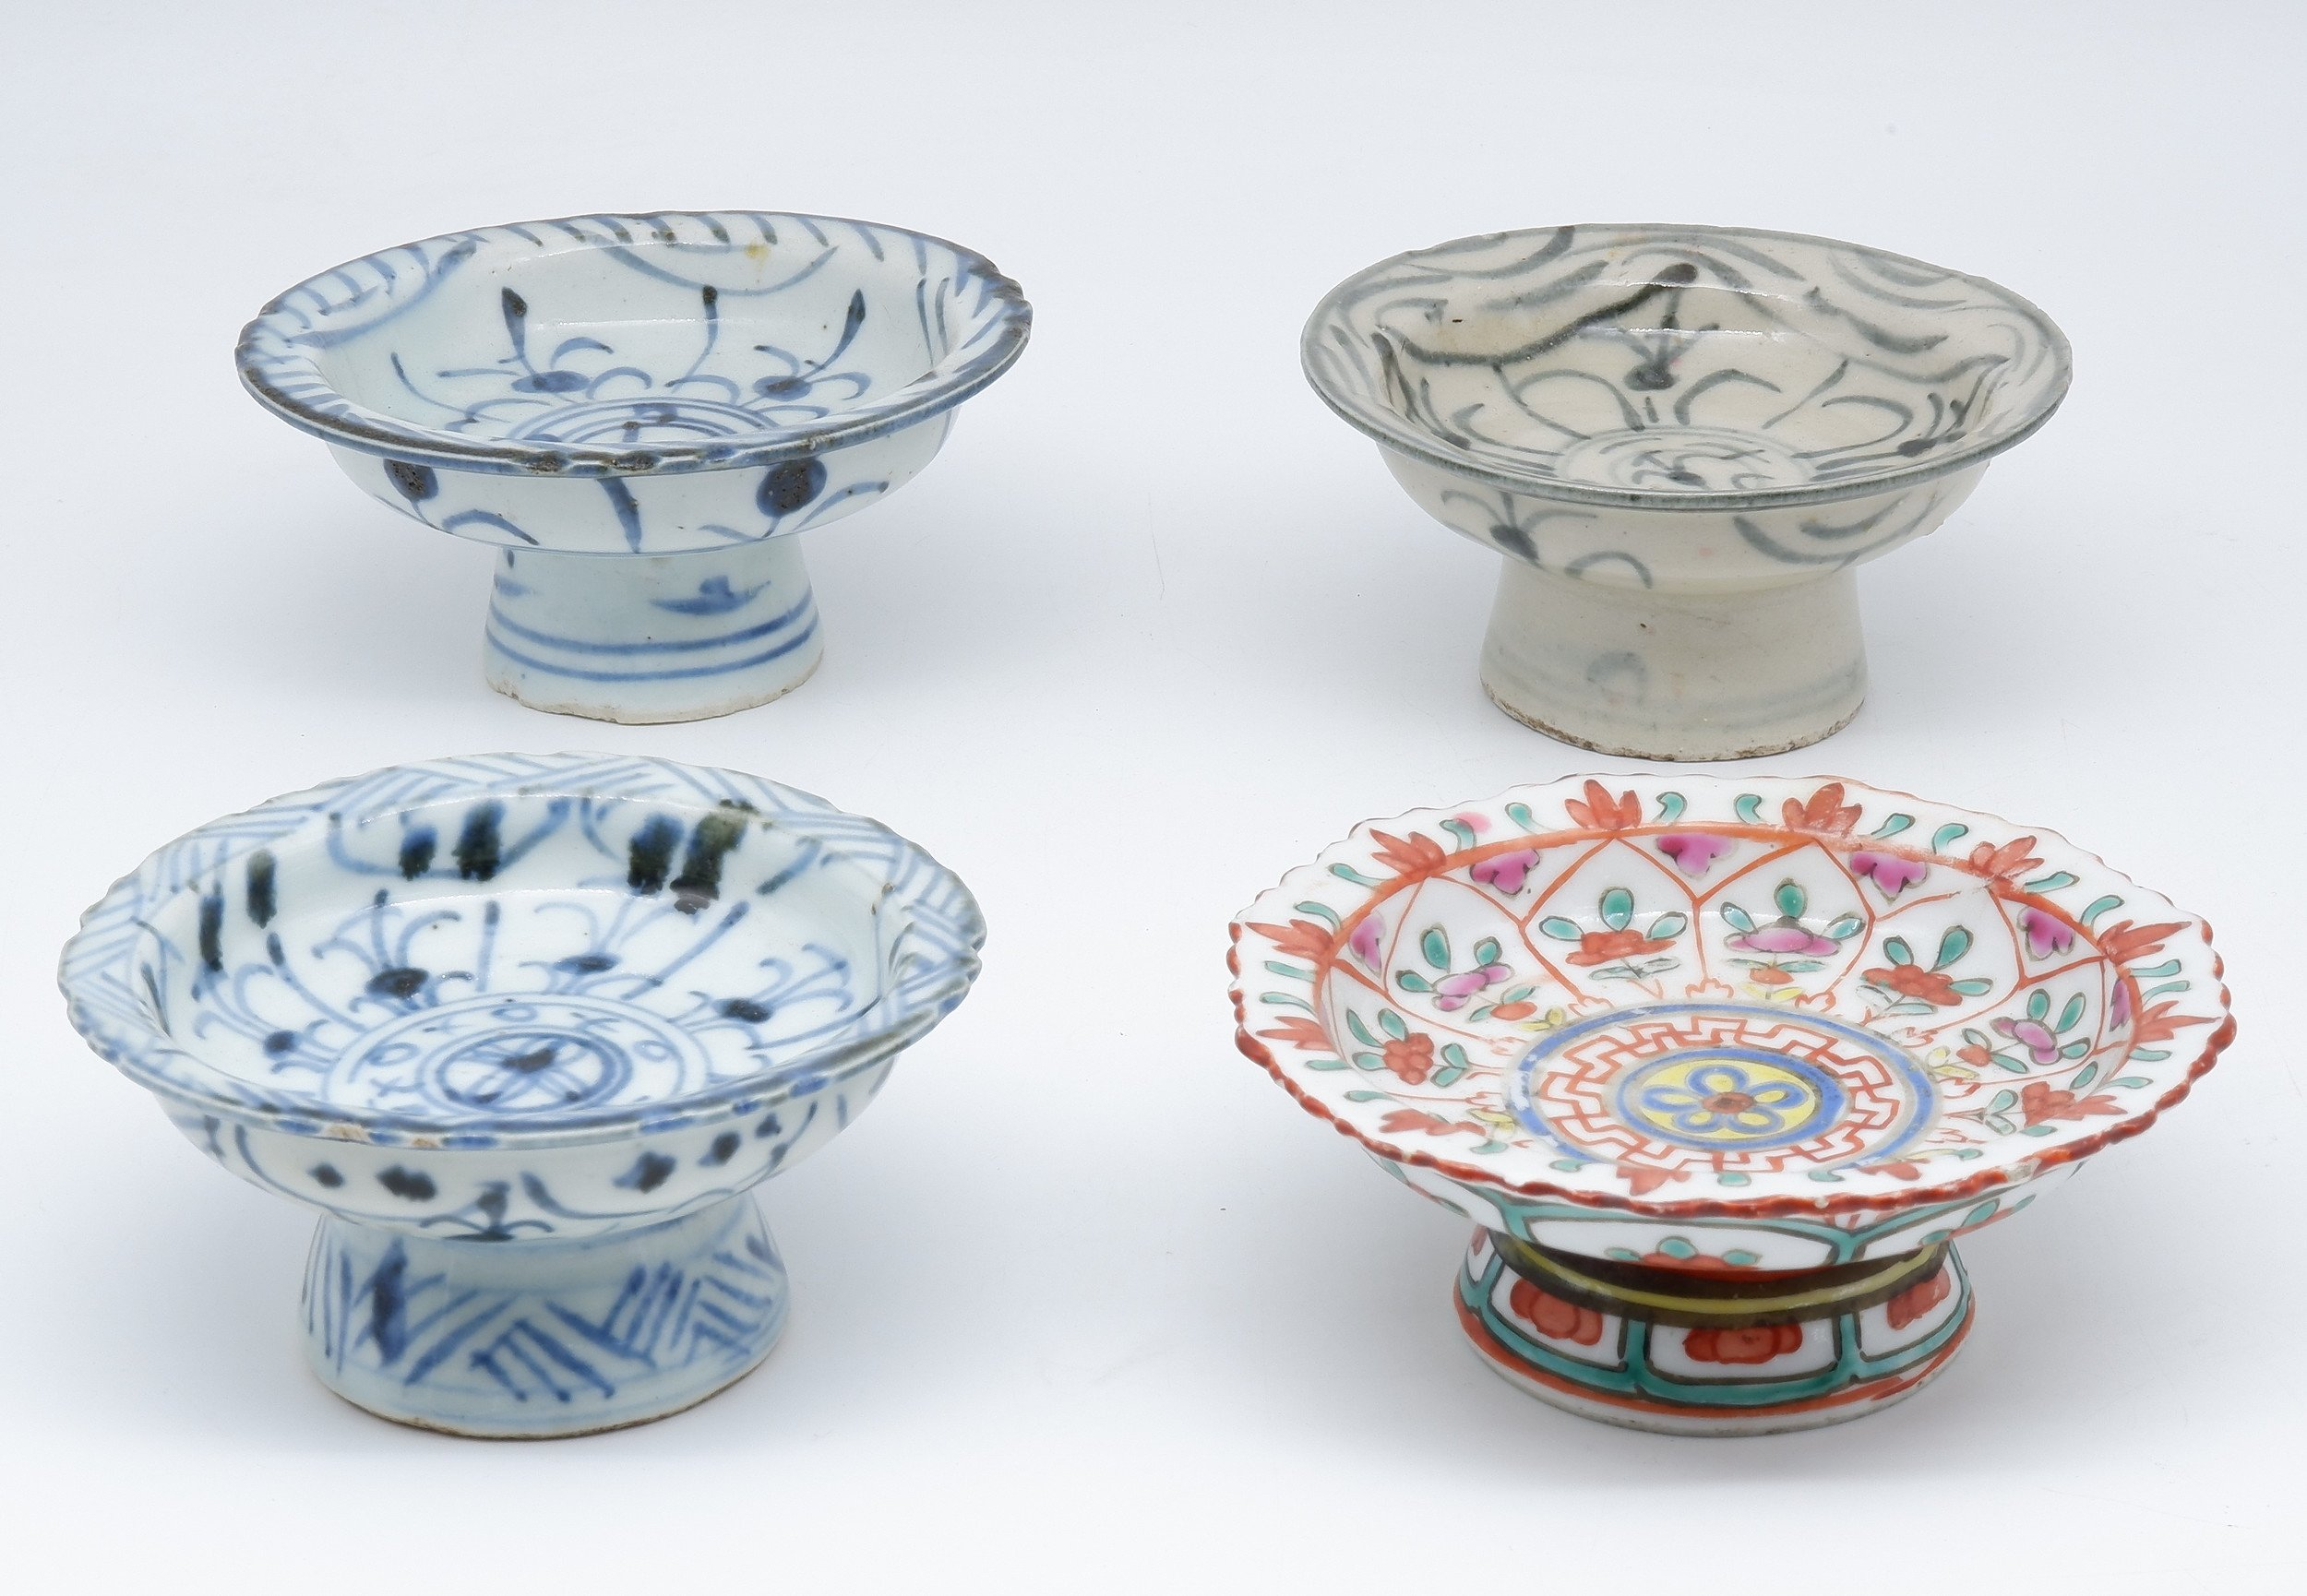 'Four Chinese Porcelain Pedestal Cups, 19th Century '